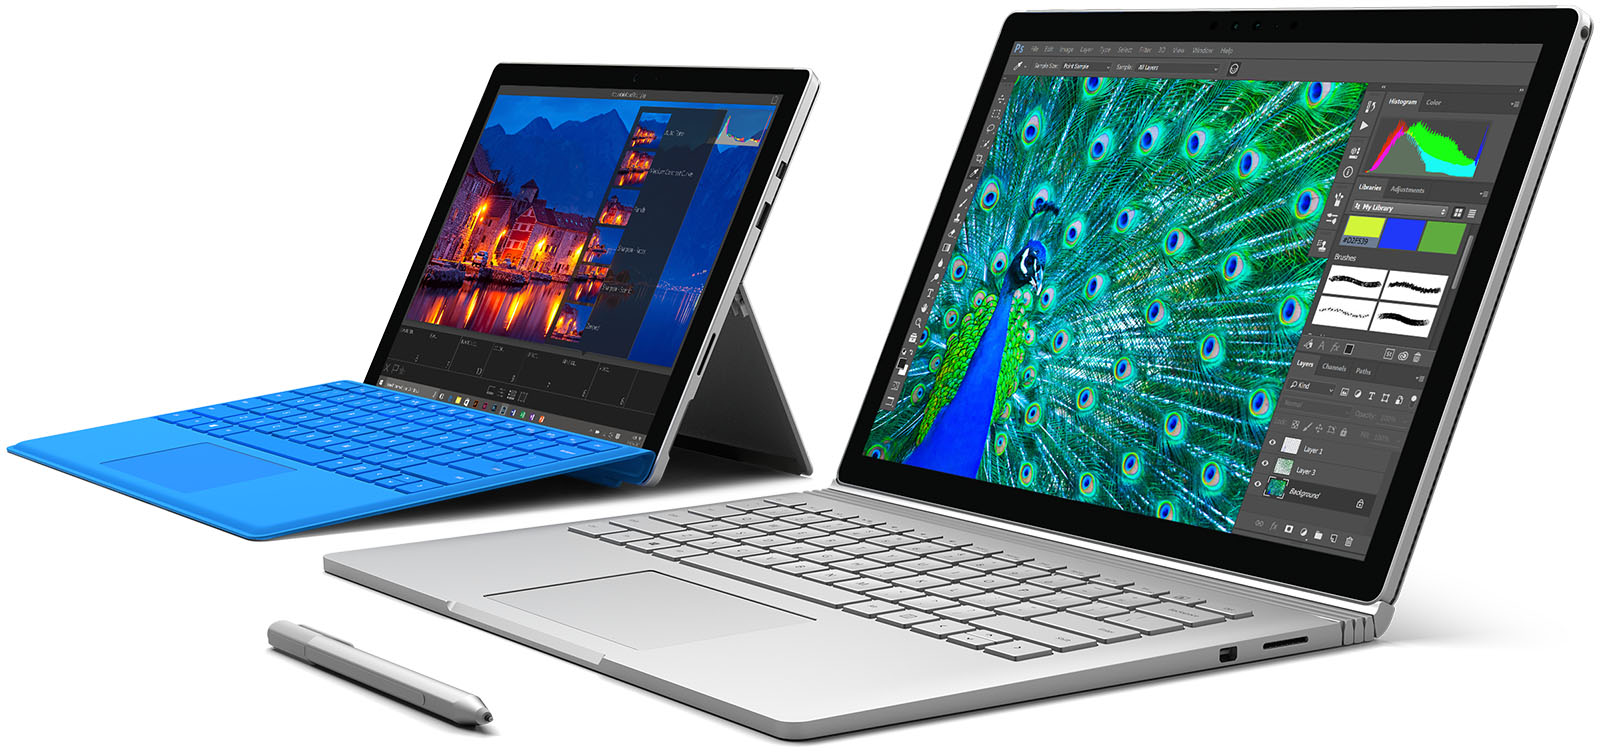 Microsoft Unveils Much-anticipated Surface Pro 4, Surprises With Brand-new Surface Book Notebook ...